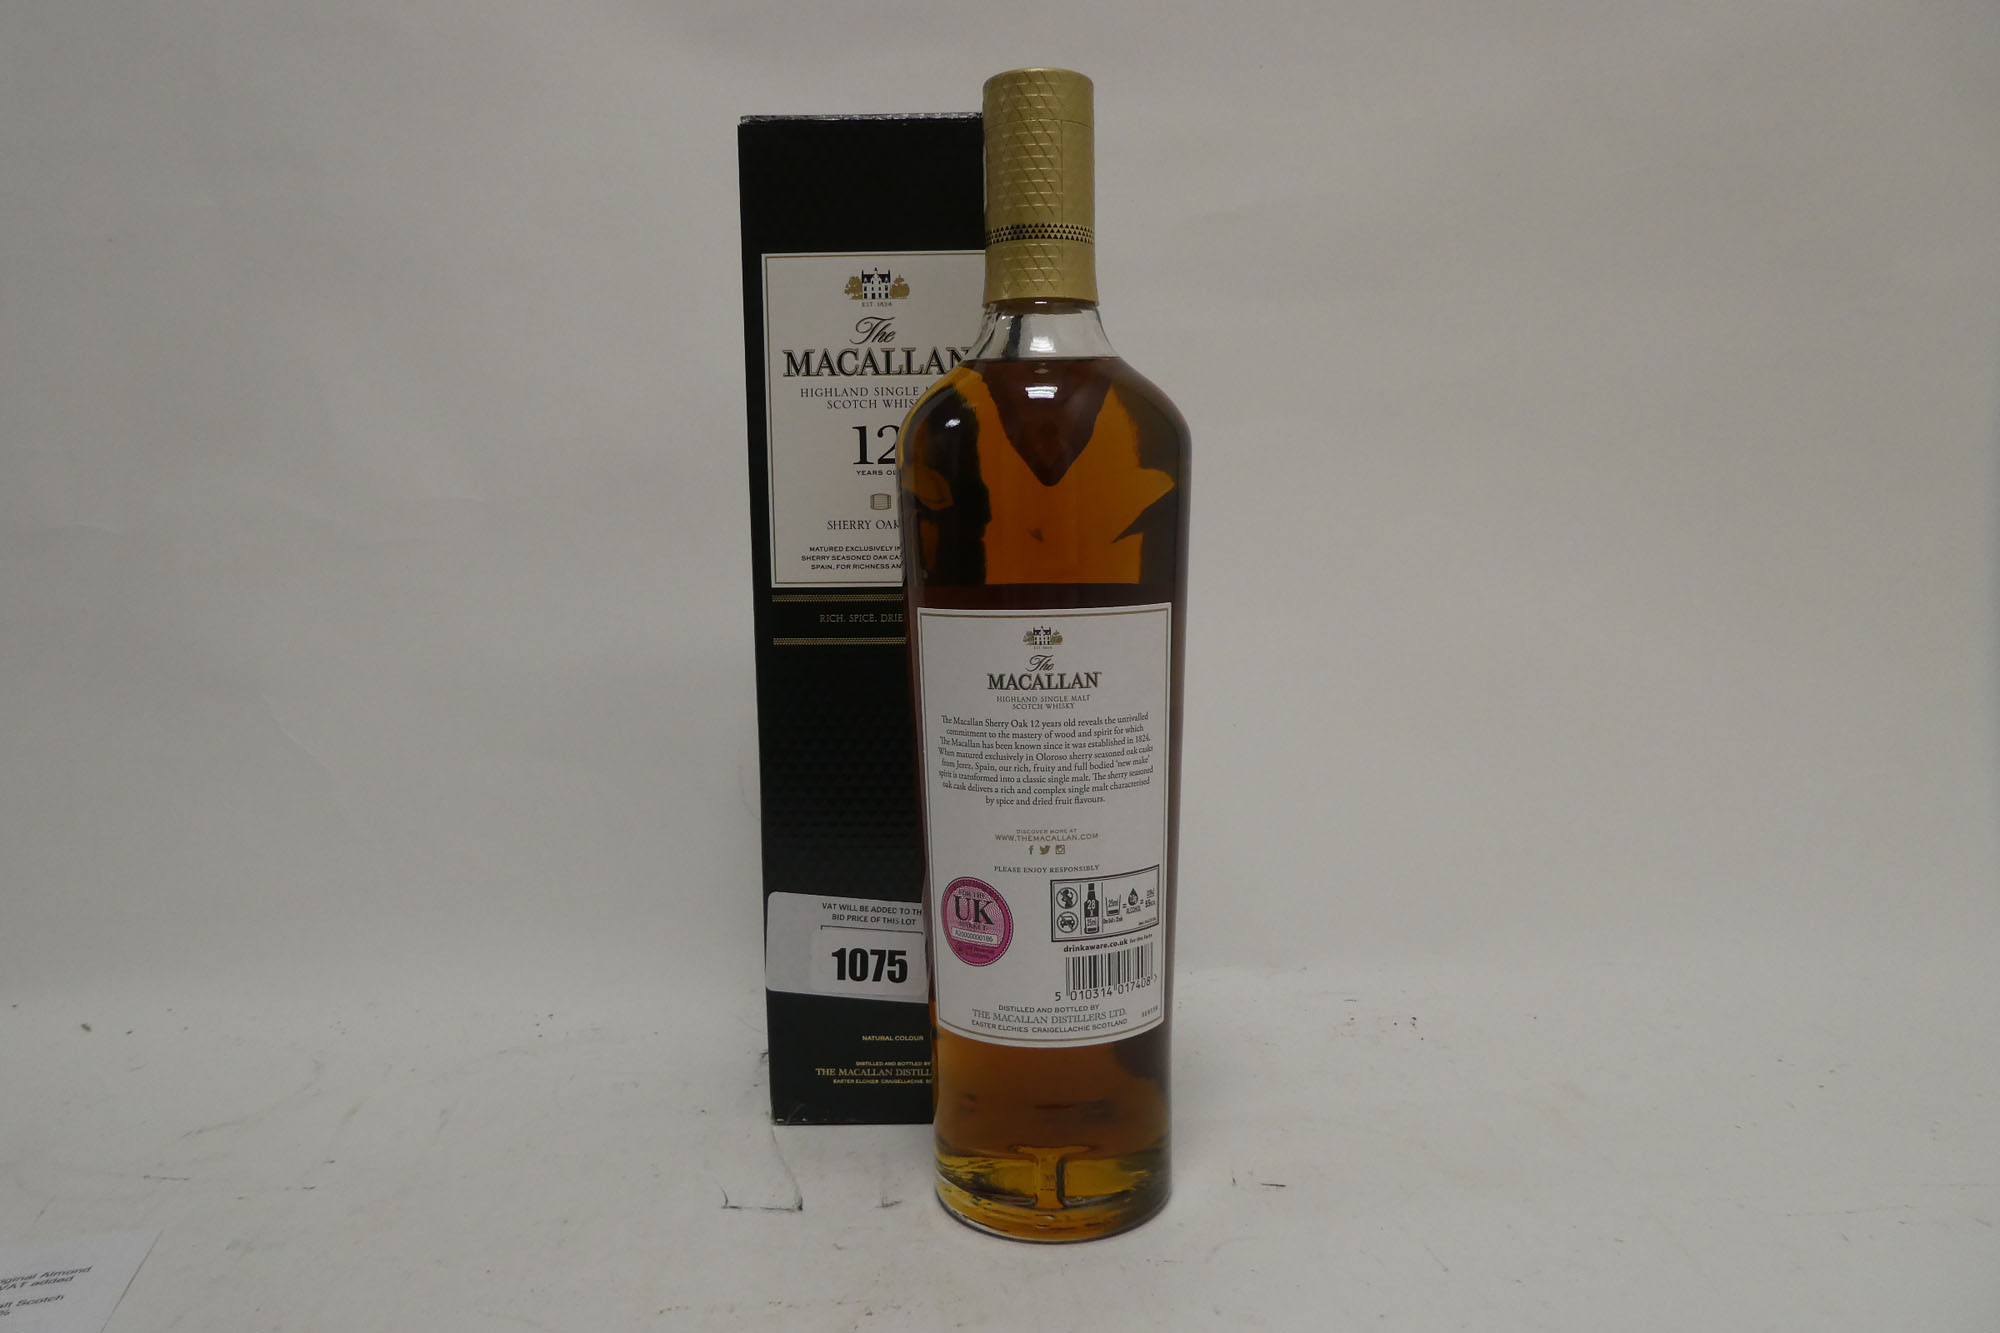 A bottle of The MACALLAN 12 year old Sherry Oak Cask Highland Single Malt Scotch Whisky with box - Image 2 of 2